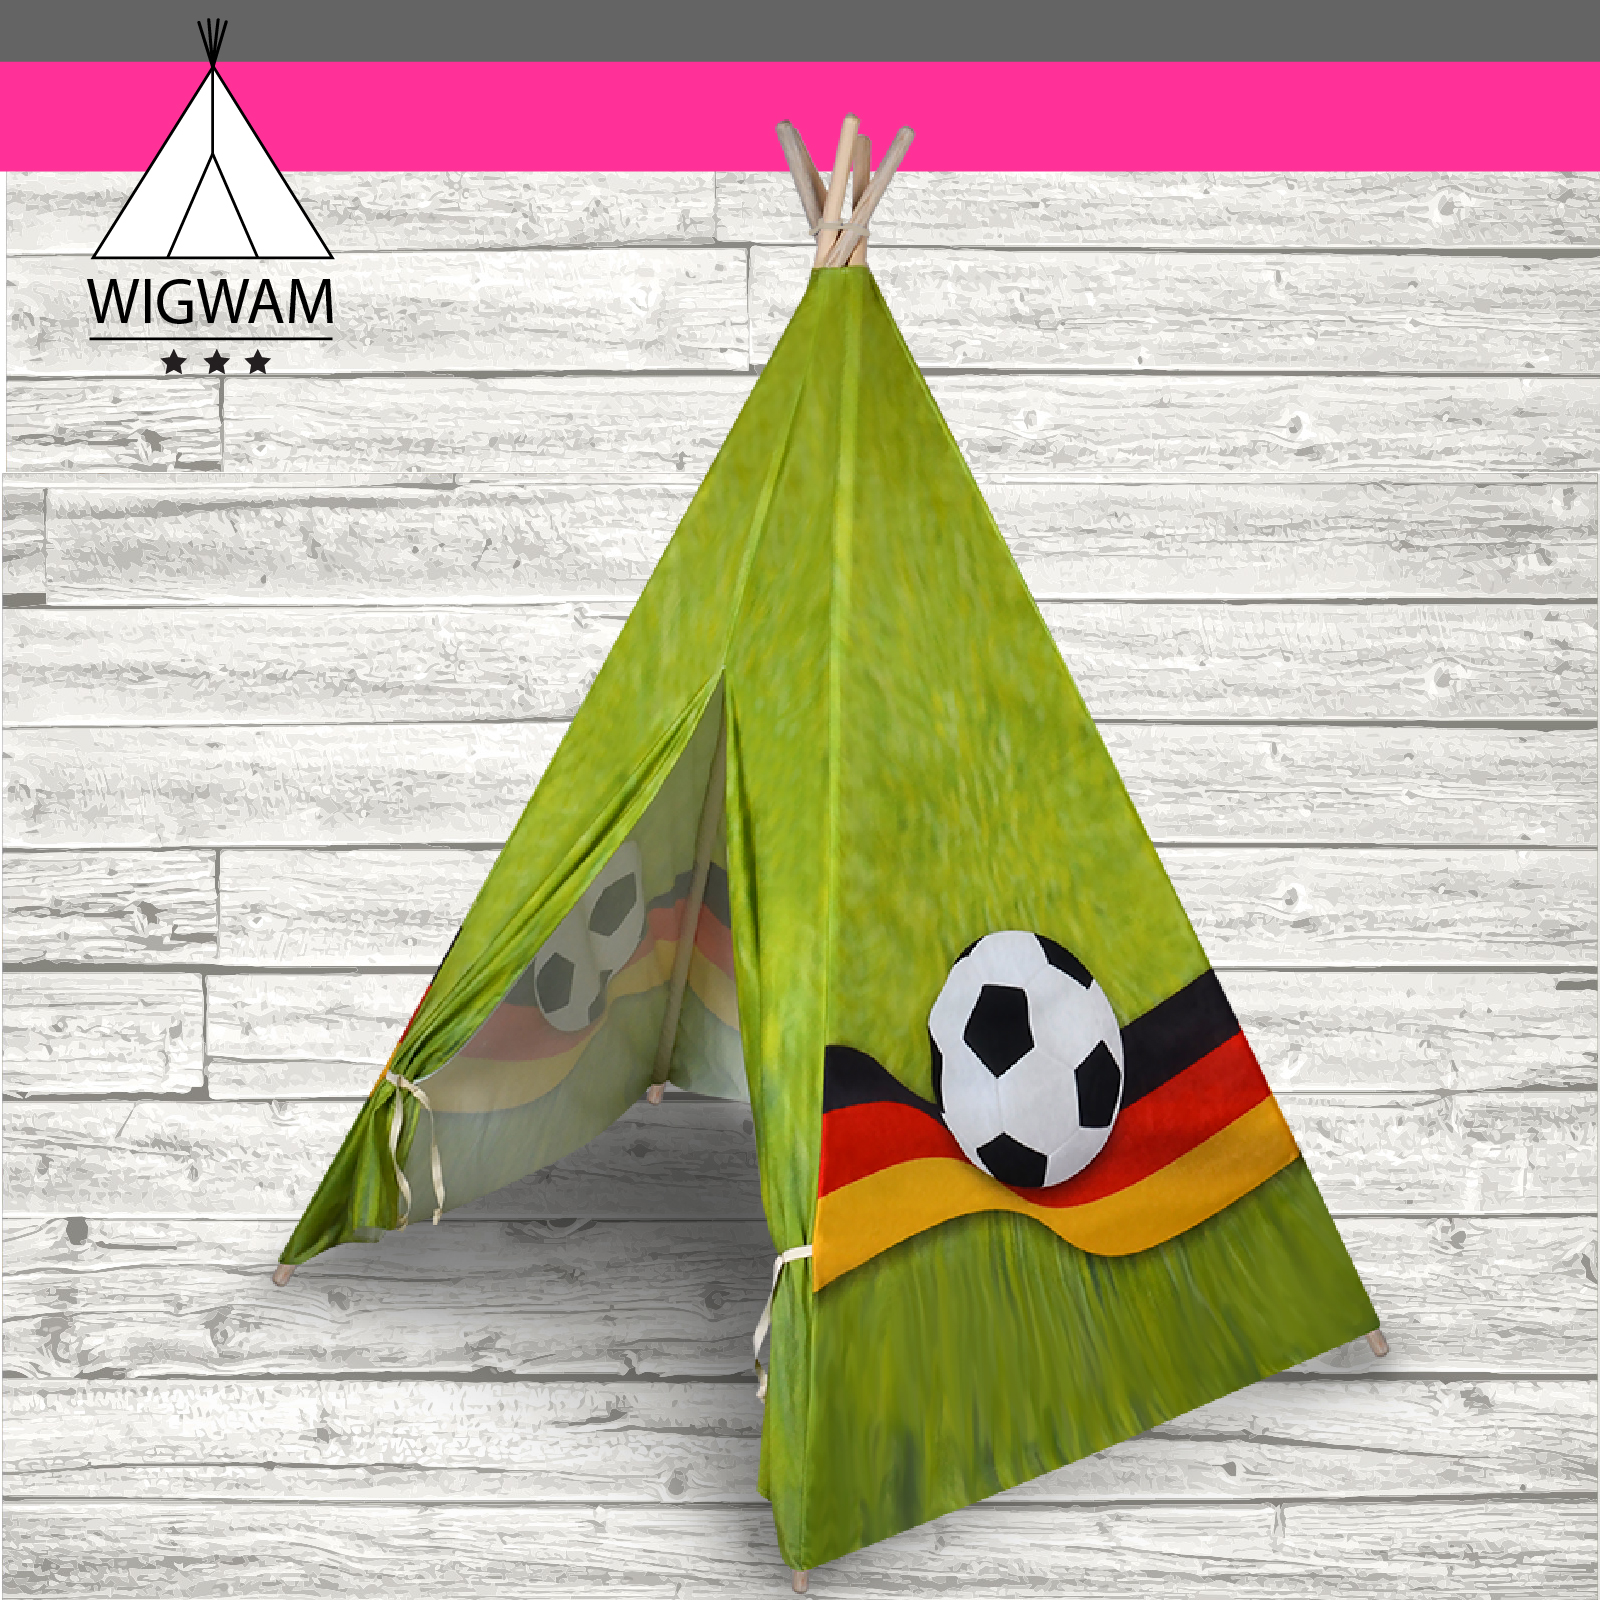 indianerzelt spielzelt wigwam kinderzelt kinder zelt f r drinnen und drau en ebay. Black Bedroom Furniture Sets. Home Design Ideas